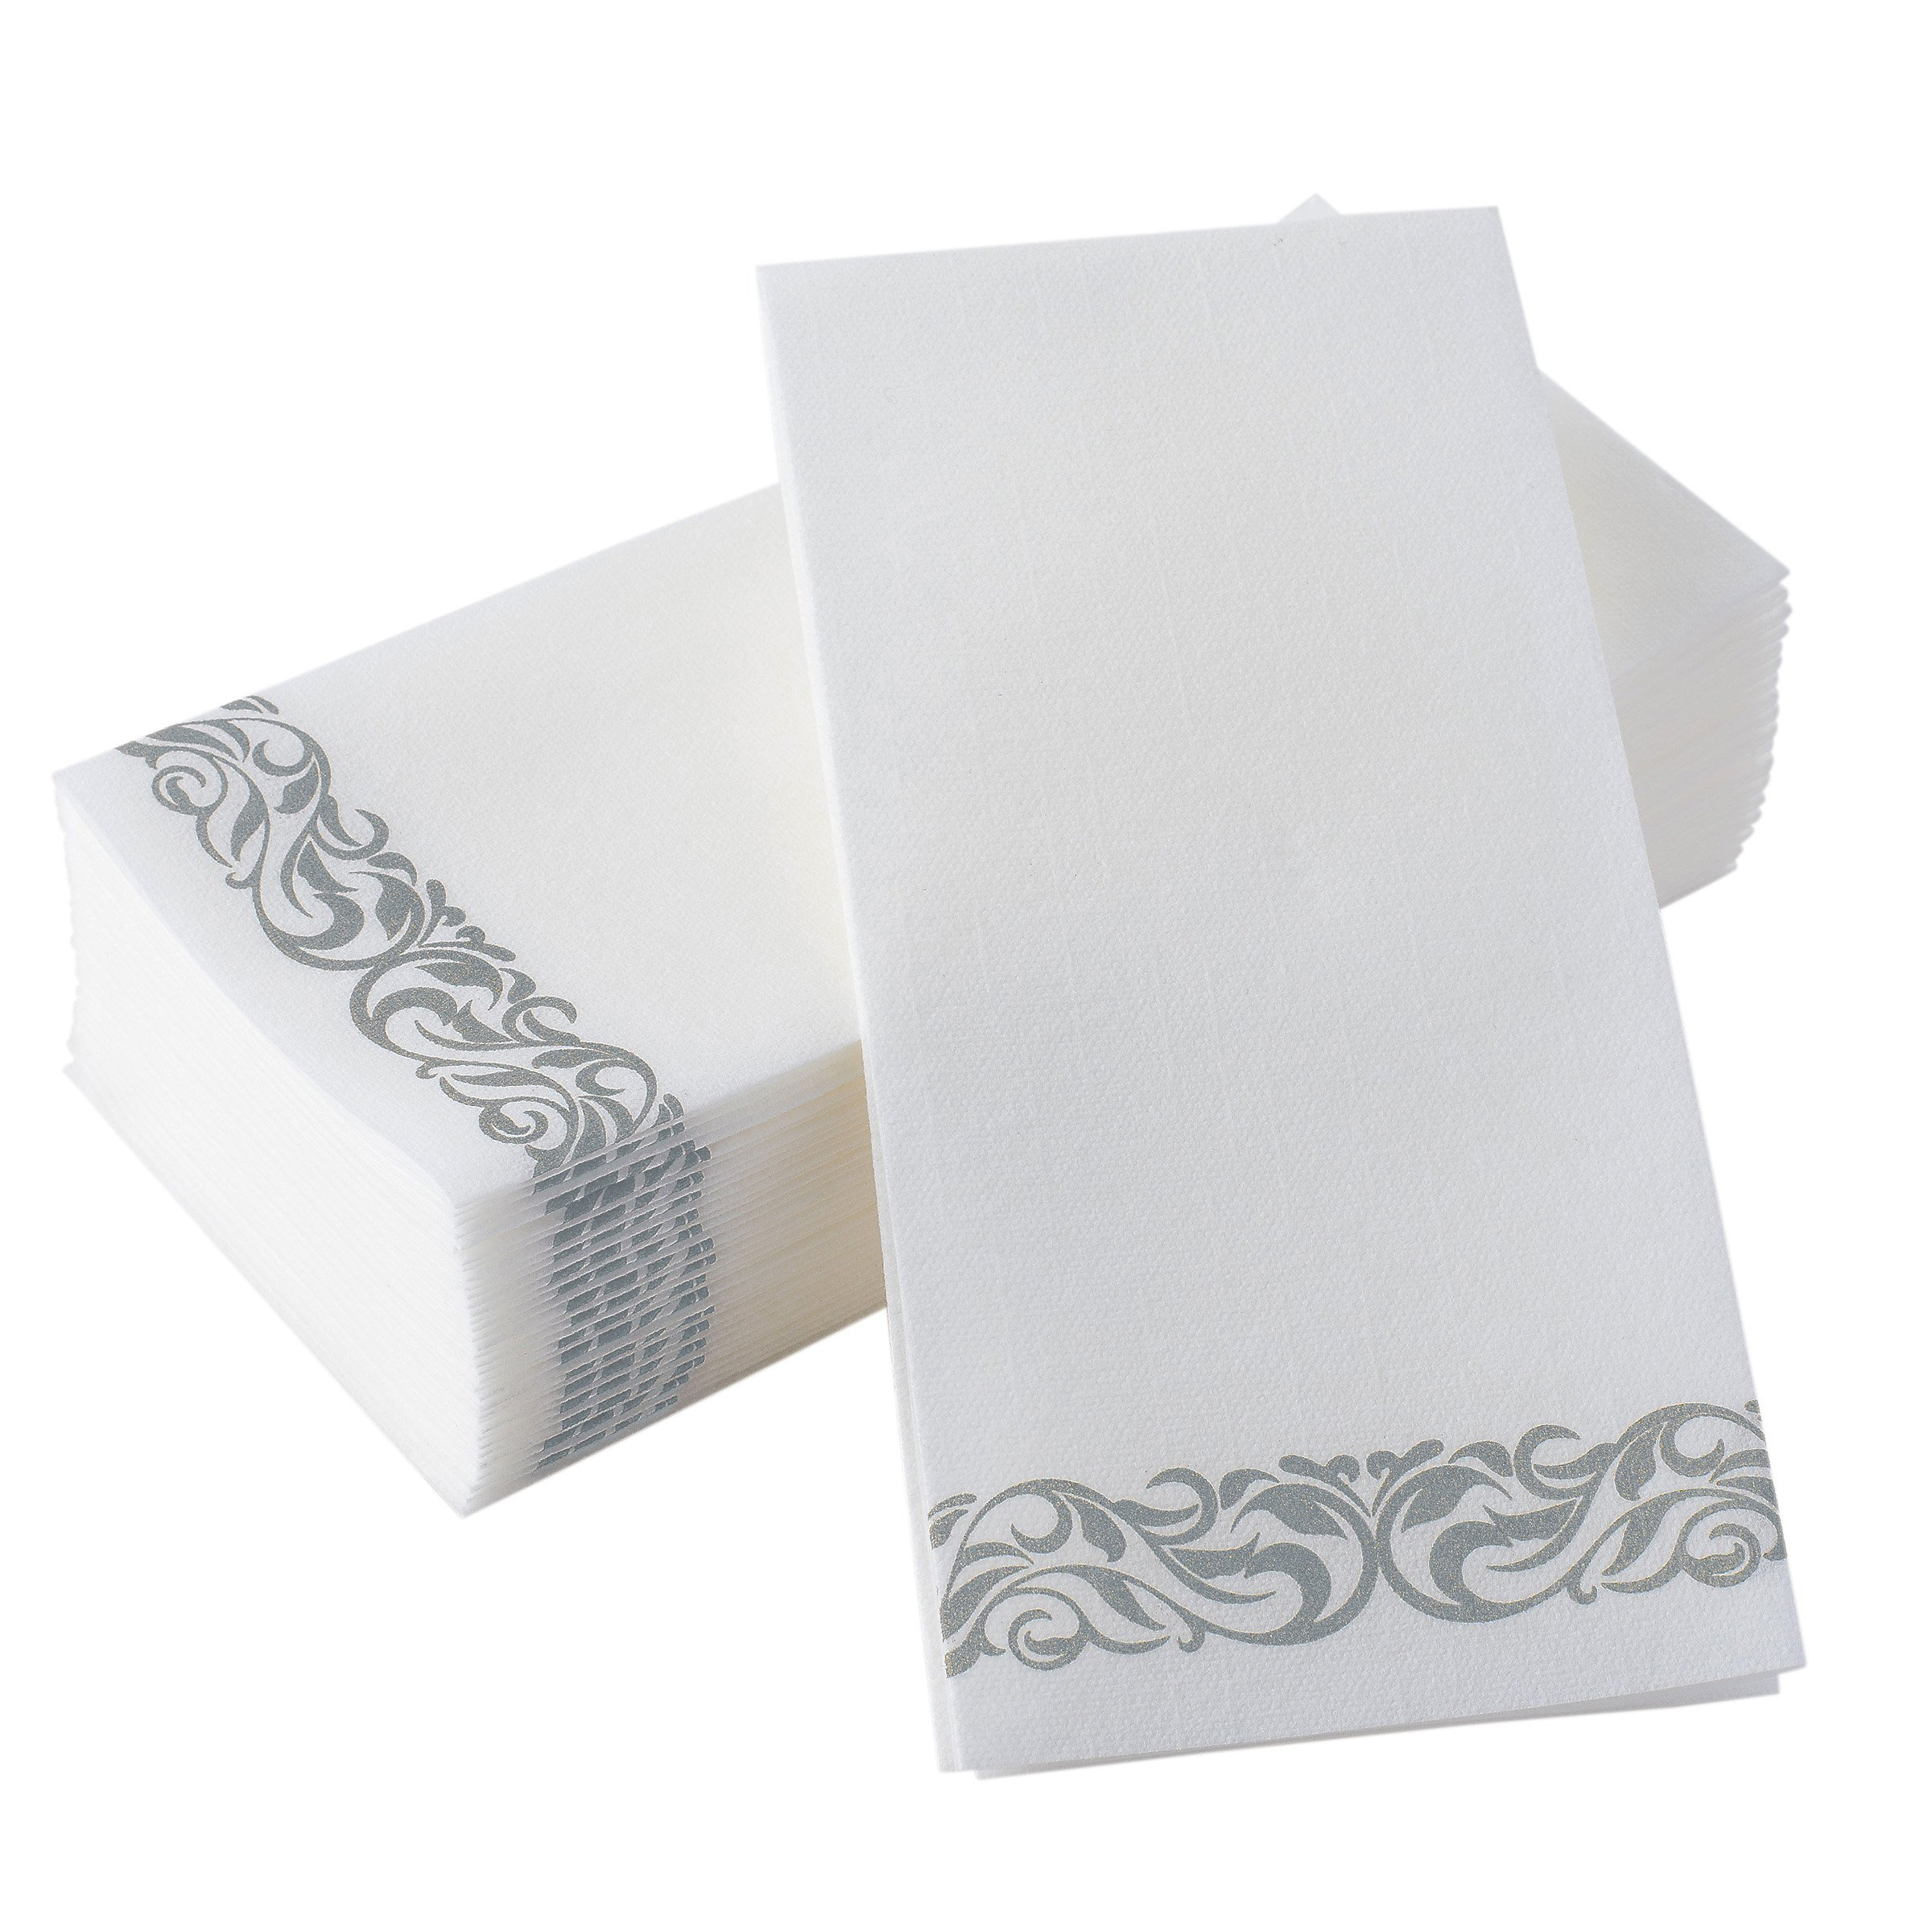 BloominGoods Decorative Linen-Feel Hand Towels Silver Floral Disposable Paper Towels for Guests - Pack of 100 (1000) by BloominGoods